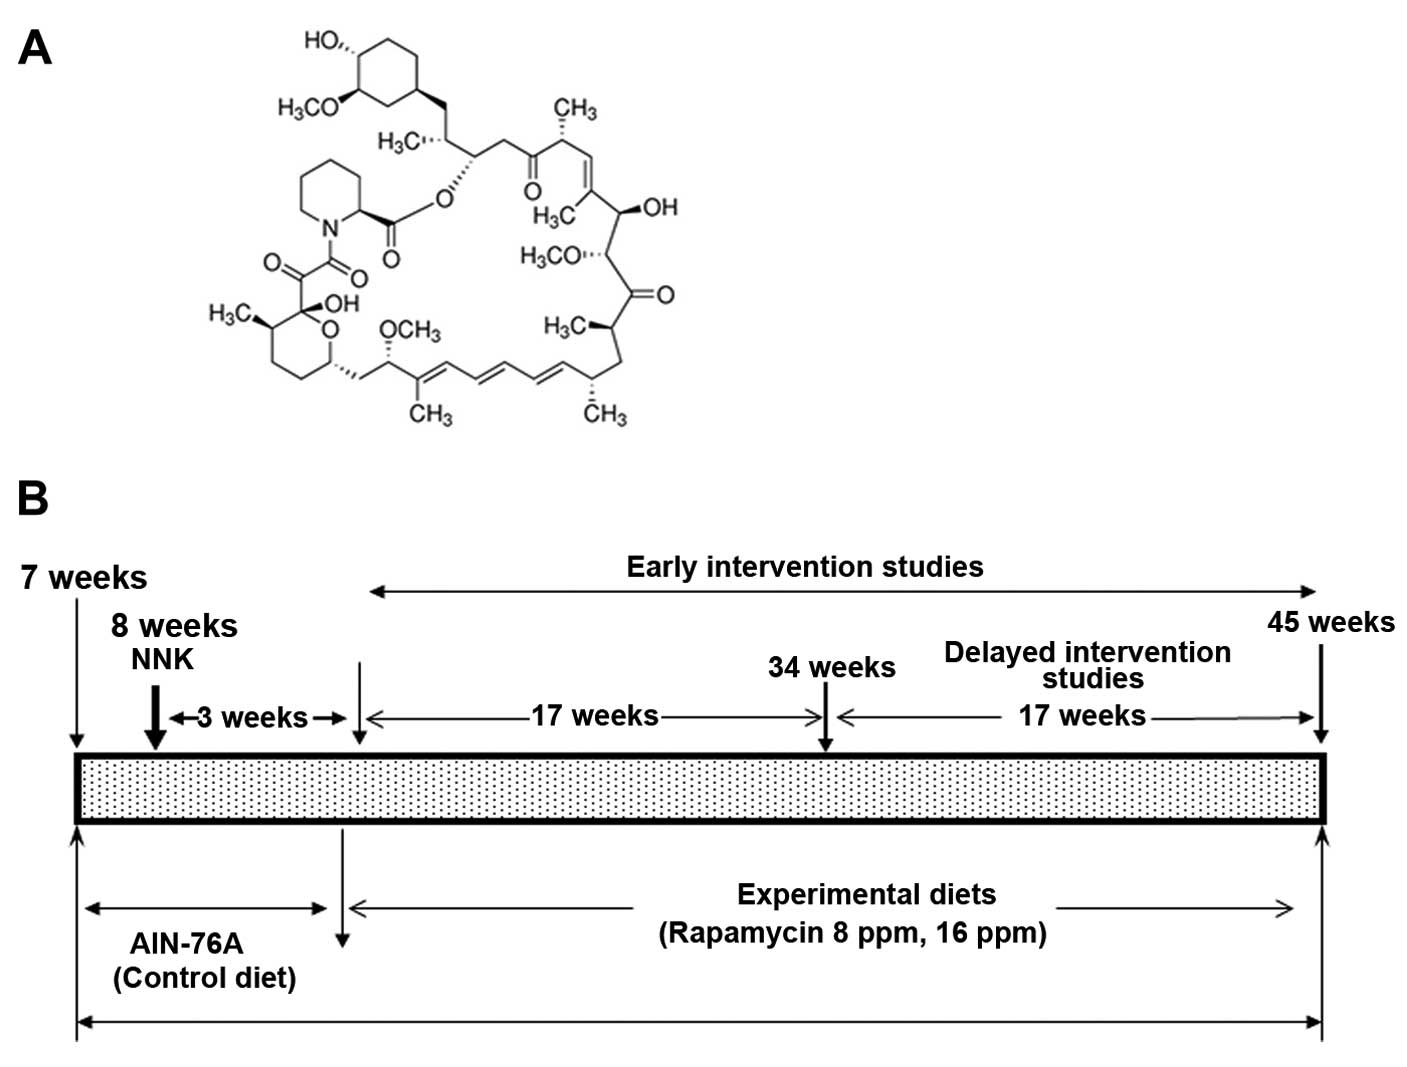 Early And Delayed Intervention With Rapamycin Prevents NNK Induced